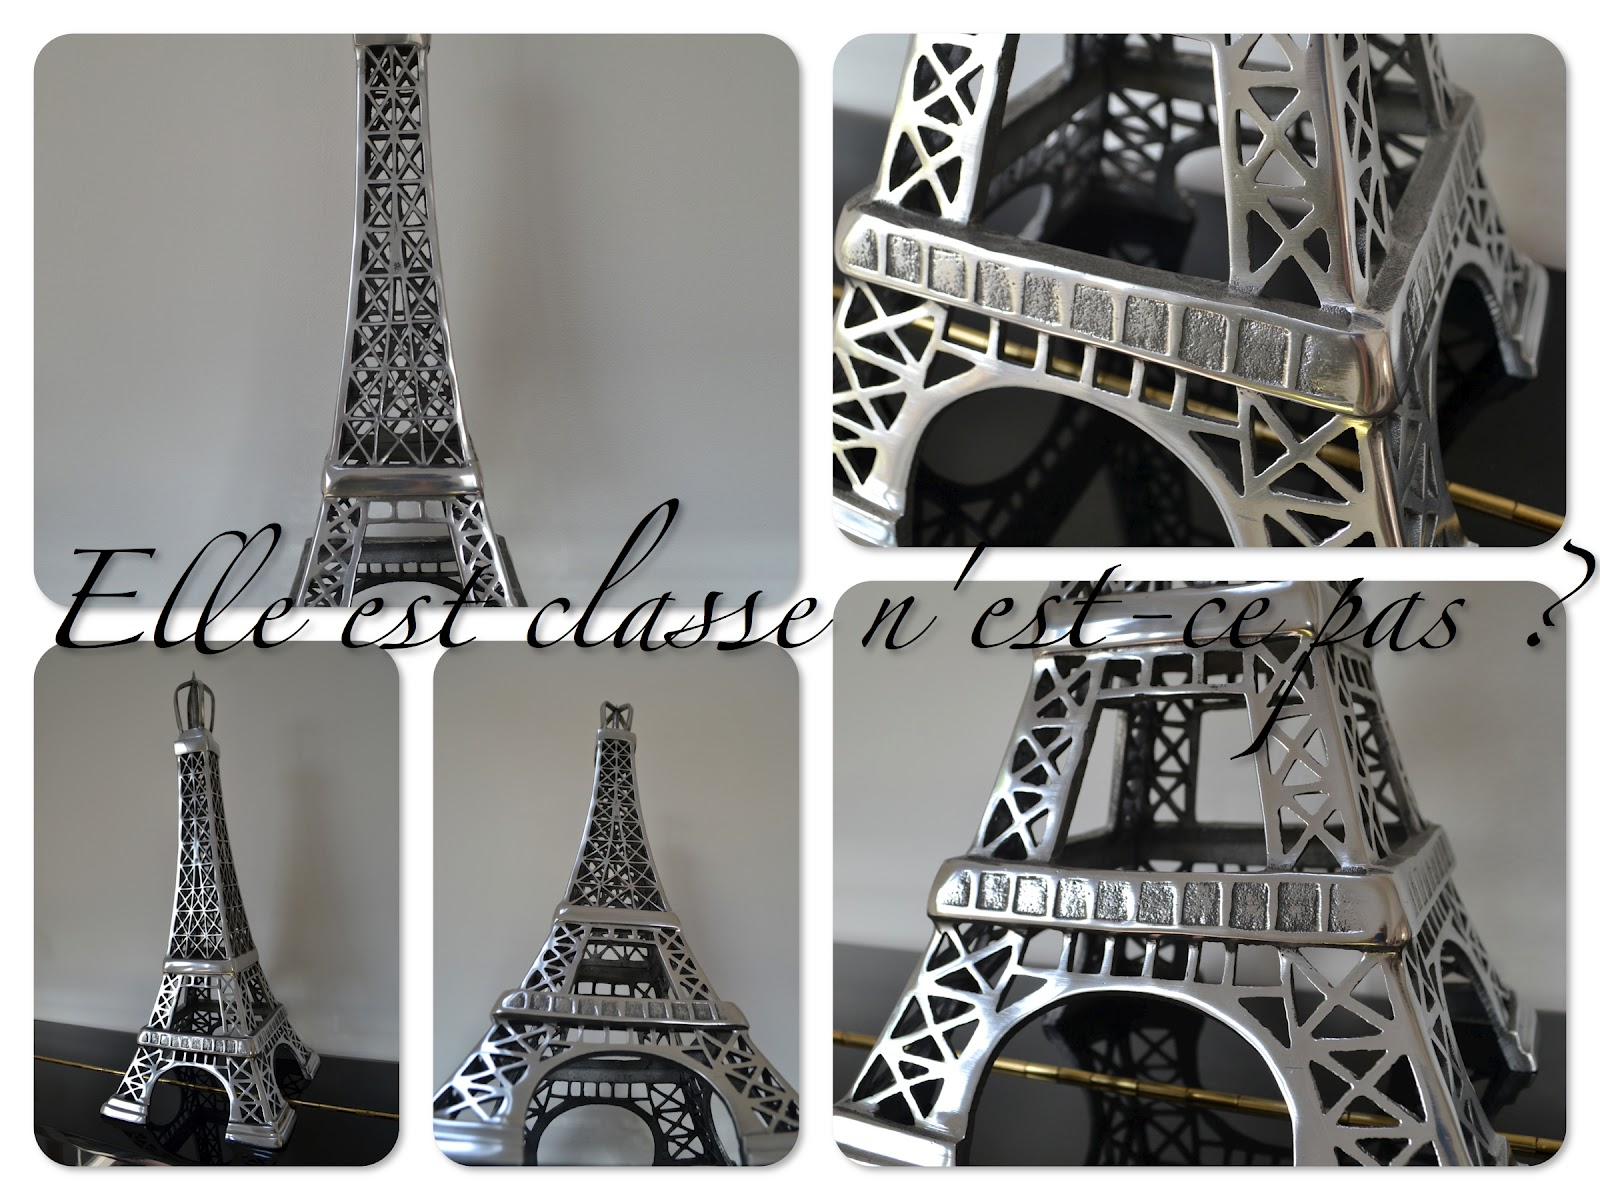 ours ficelle de lin katheline aime aussi la tour eiffel. Black Bedroom Furniture Sets. Home Design Ideas